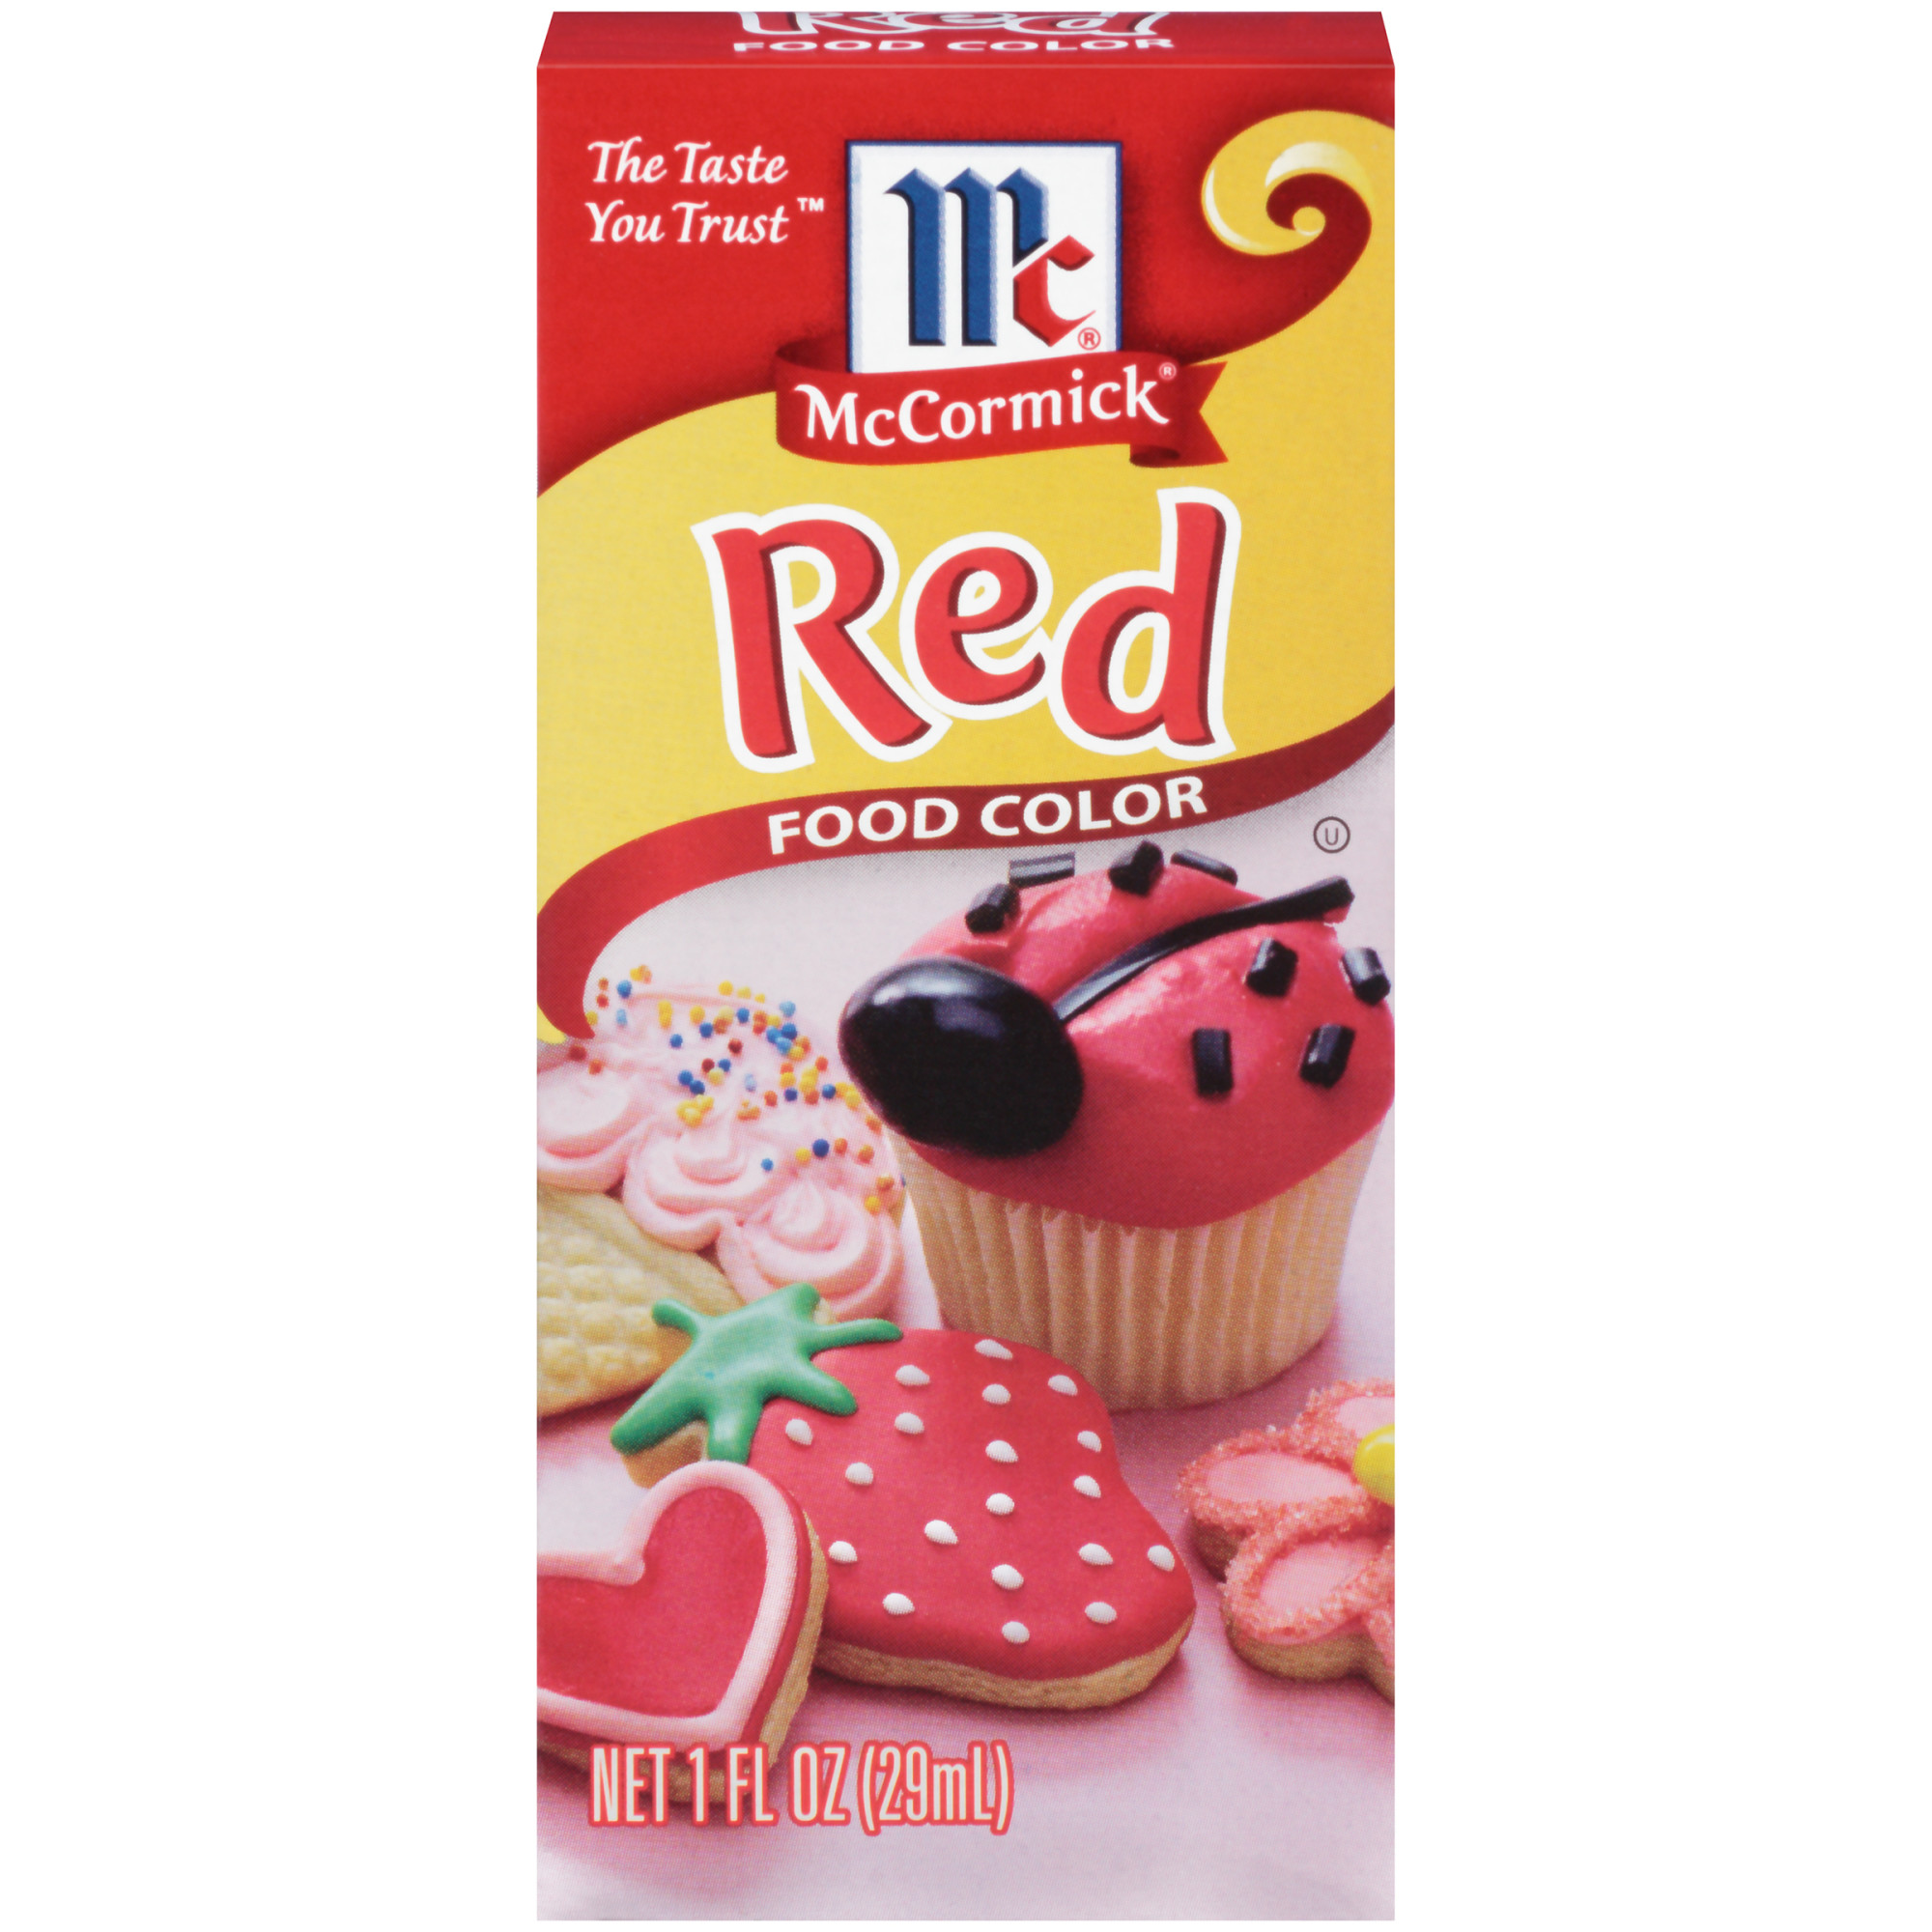 McCormick Red Food Color, 1 fl oz - Walmart.com